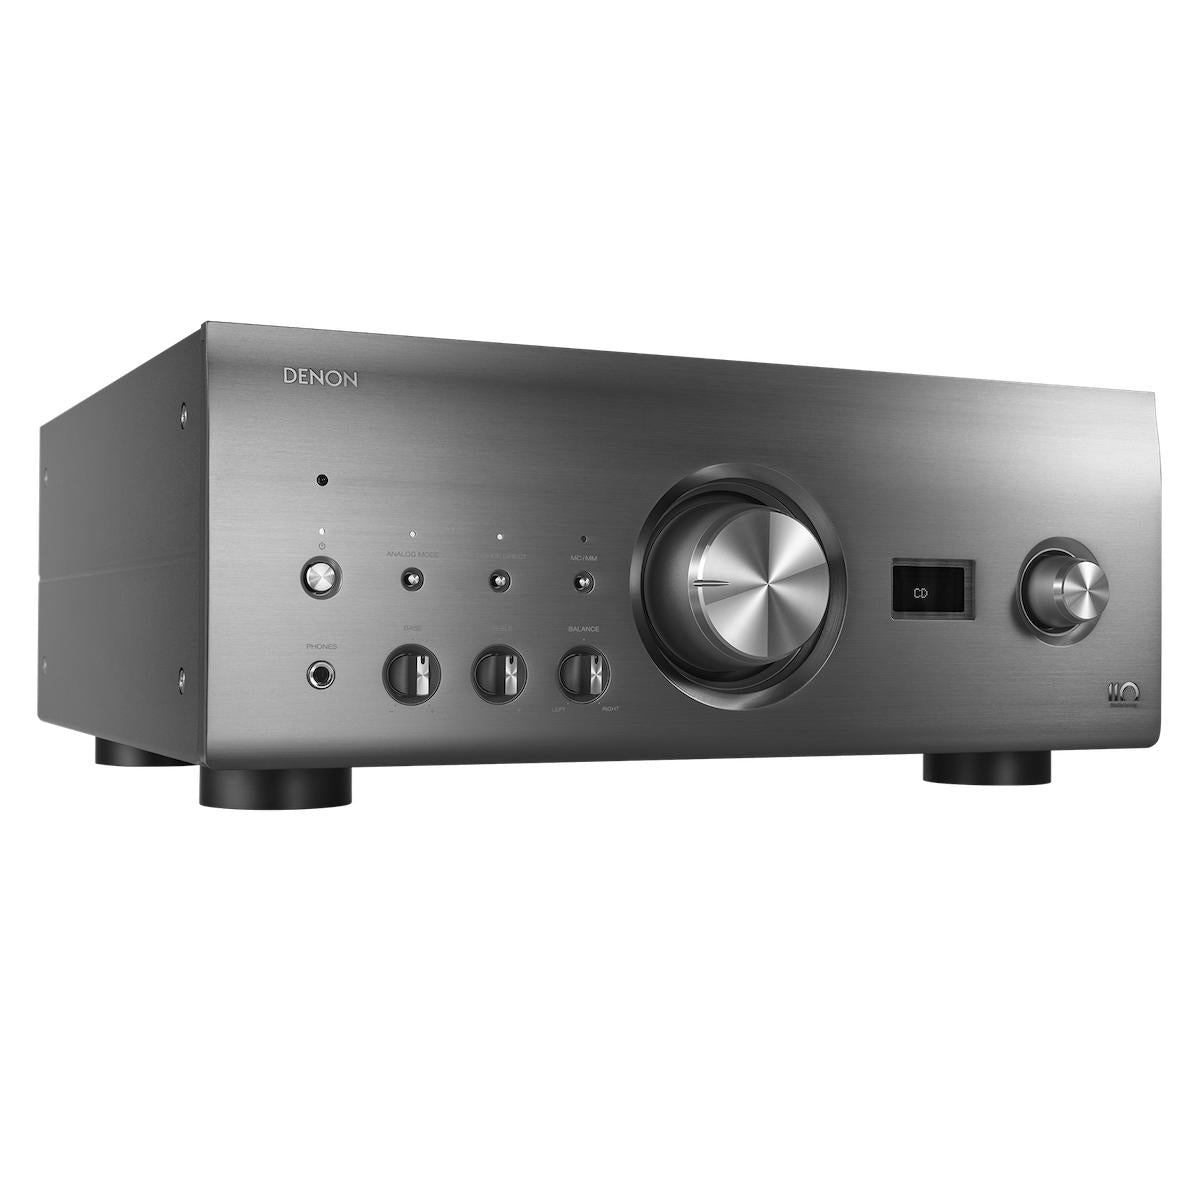 Denon PMA-A110 - Integrated Stereo Amplifier - AVStore.in